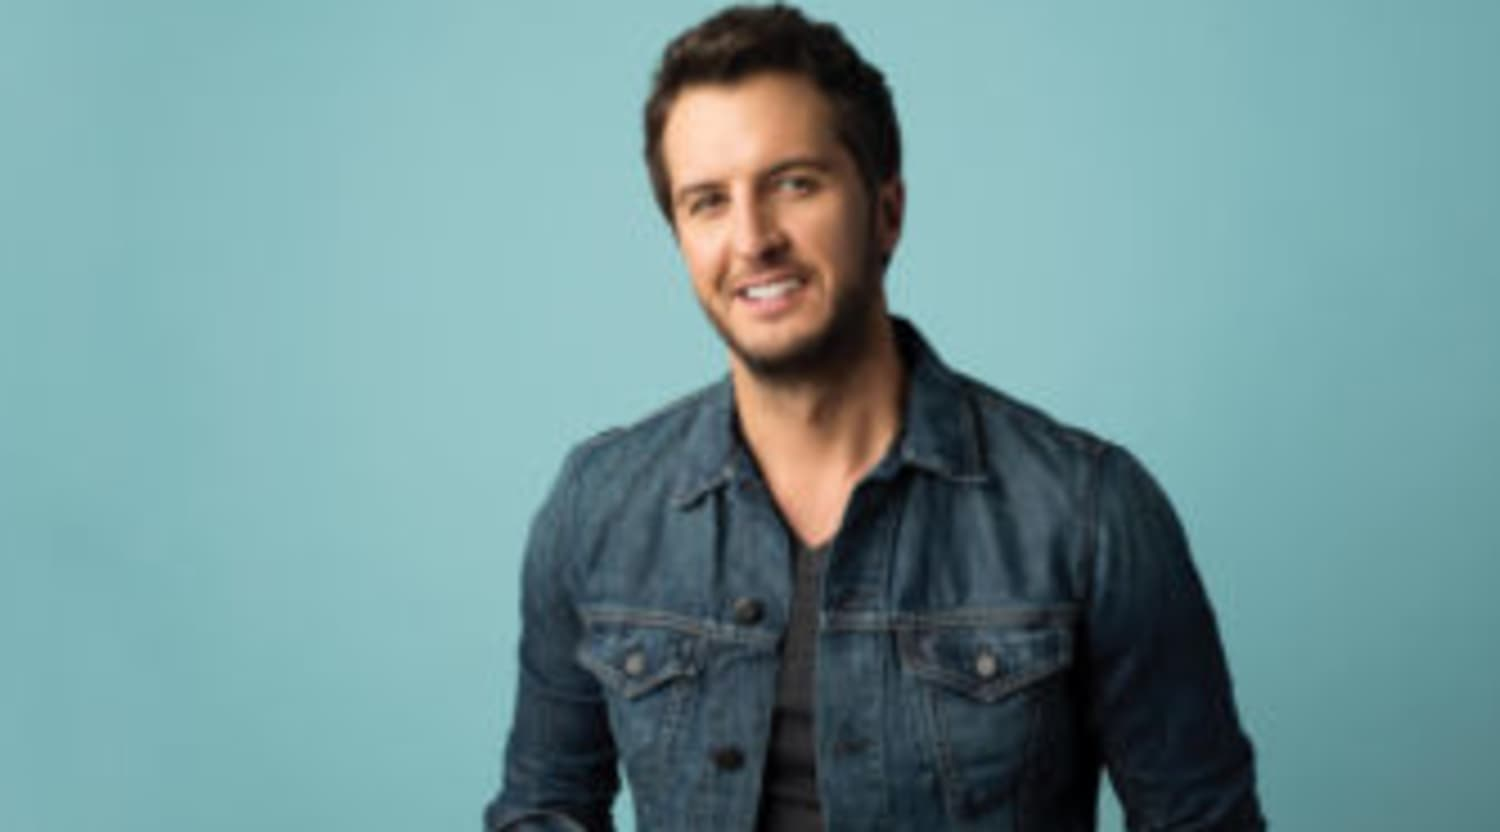 Luke Bryan 2020 Tour.Luke Bryan Tickets Luke Bryan Concert Tickets And Tour